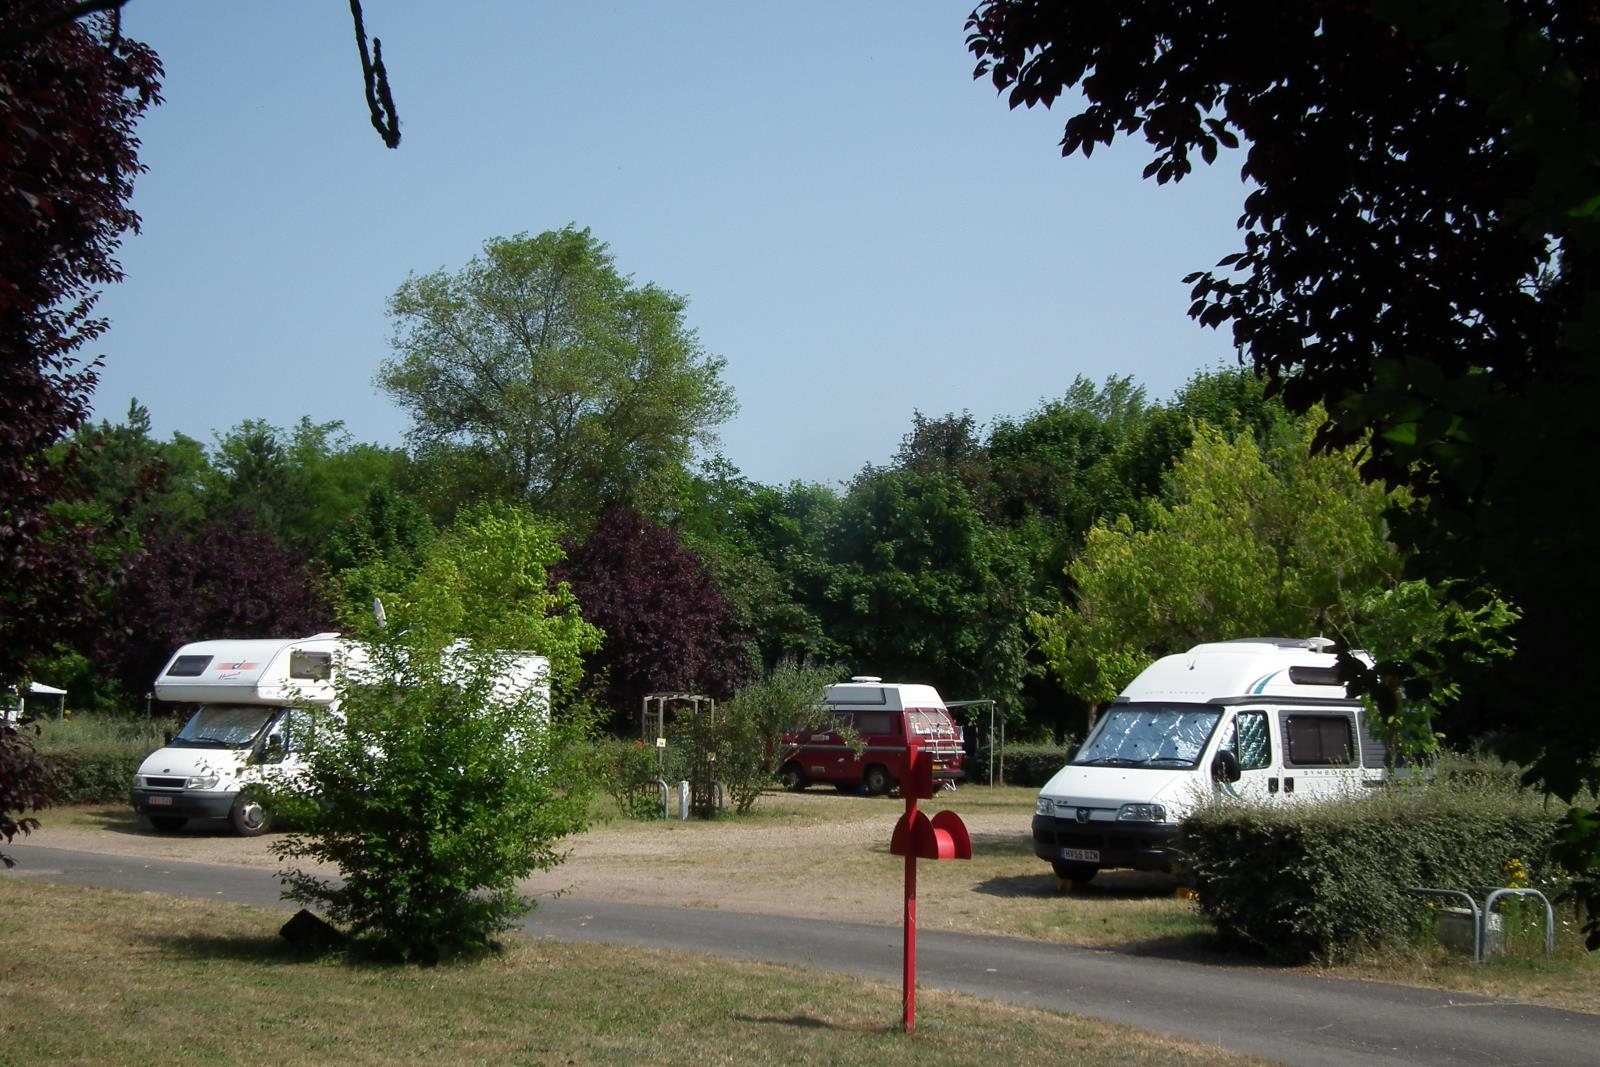 Camping pitch long stay for Camping hortus le jardin de sully